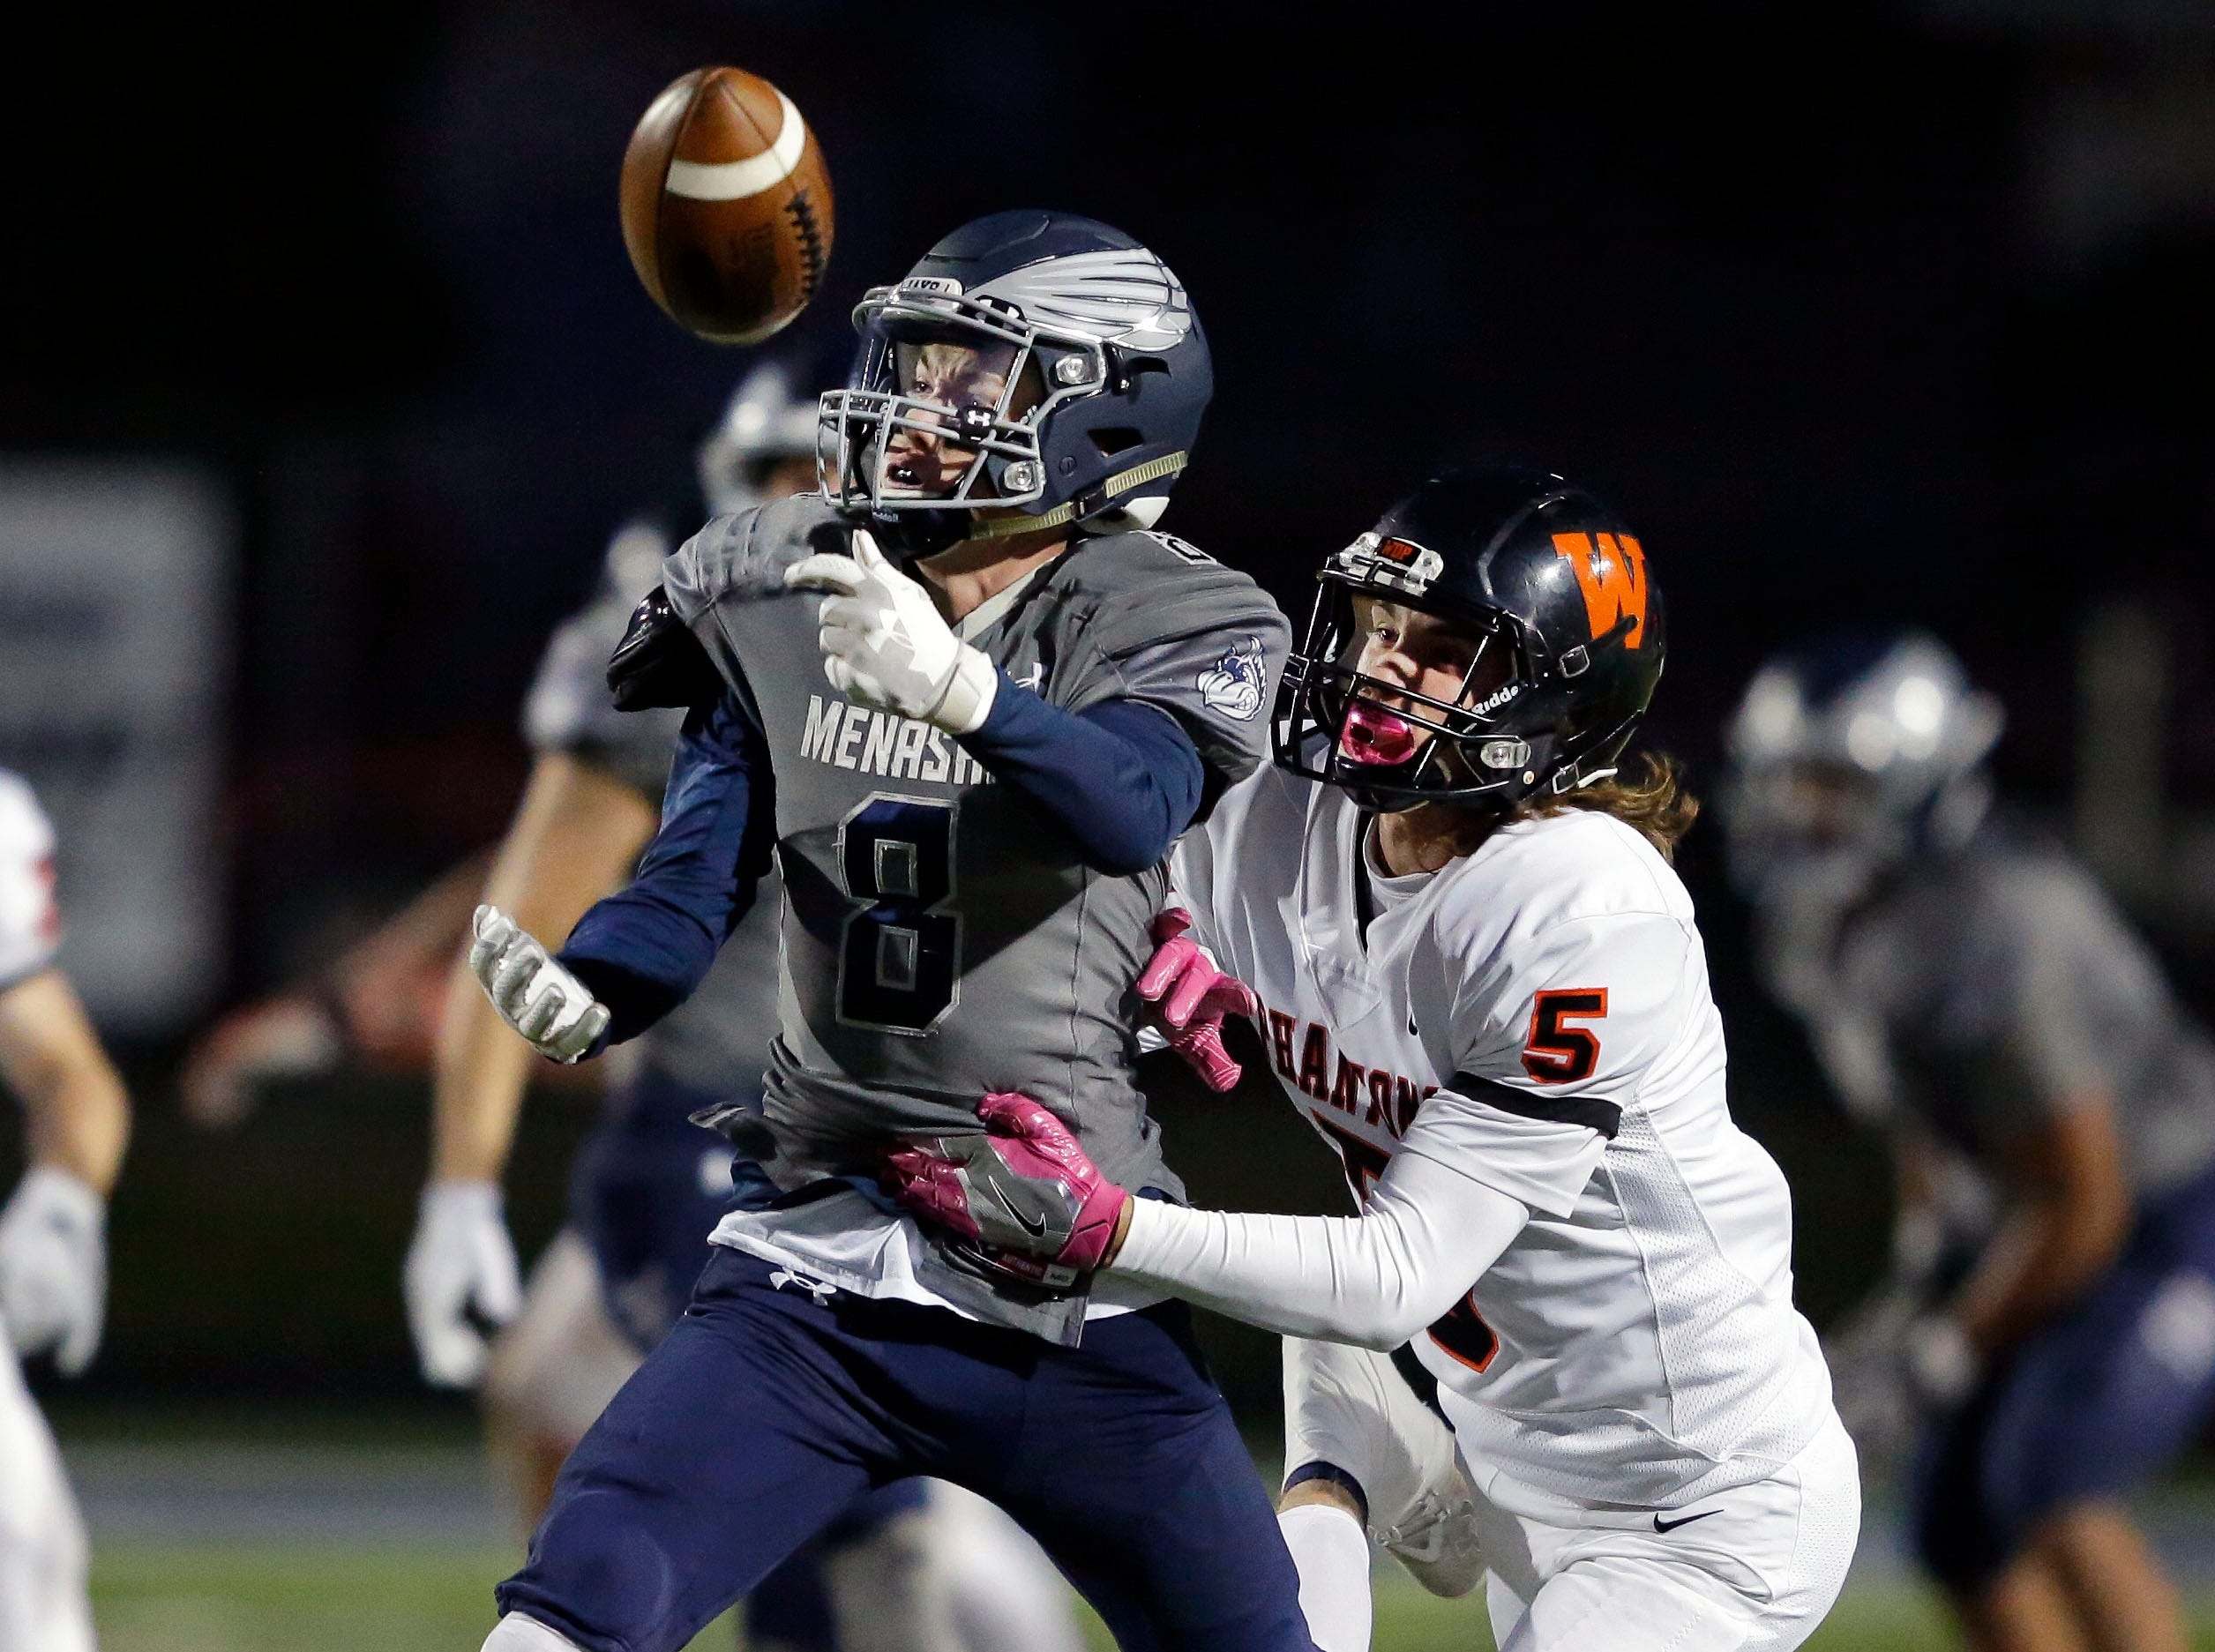 A pass is just out of reach for Brady Jurgella of Menasha as he is defended by Garrett Kempen of West De Pere in a Bay Conference football game Friday, September 28, 2018, at Calder Stadium in Menasha, Wis.